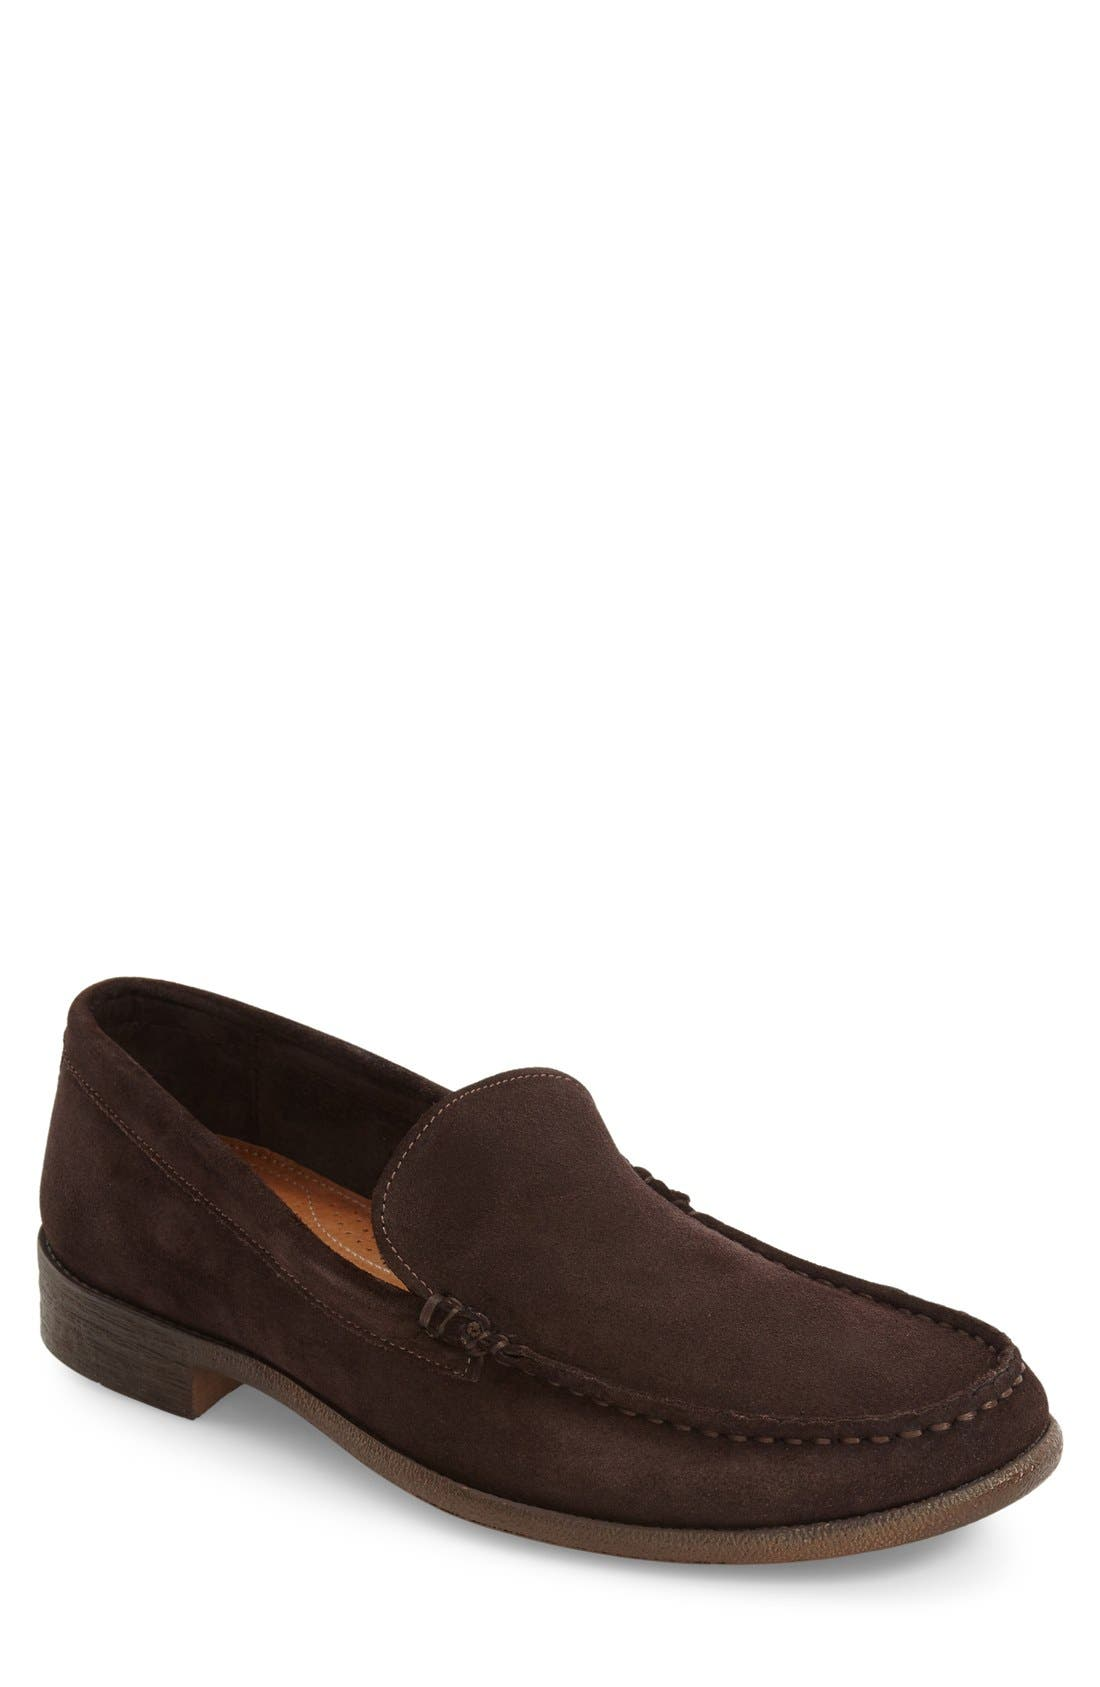 Maine Loafer,                             Main thumbnail 1, color,                             201